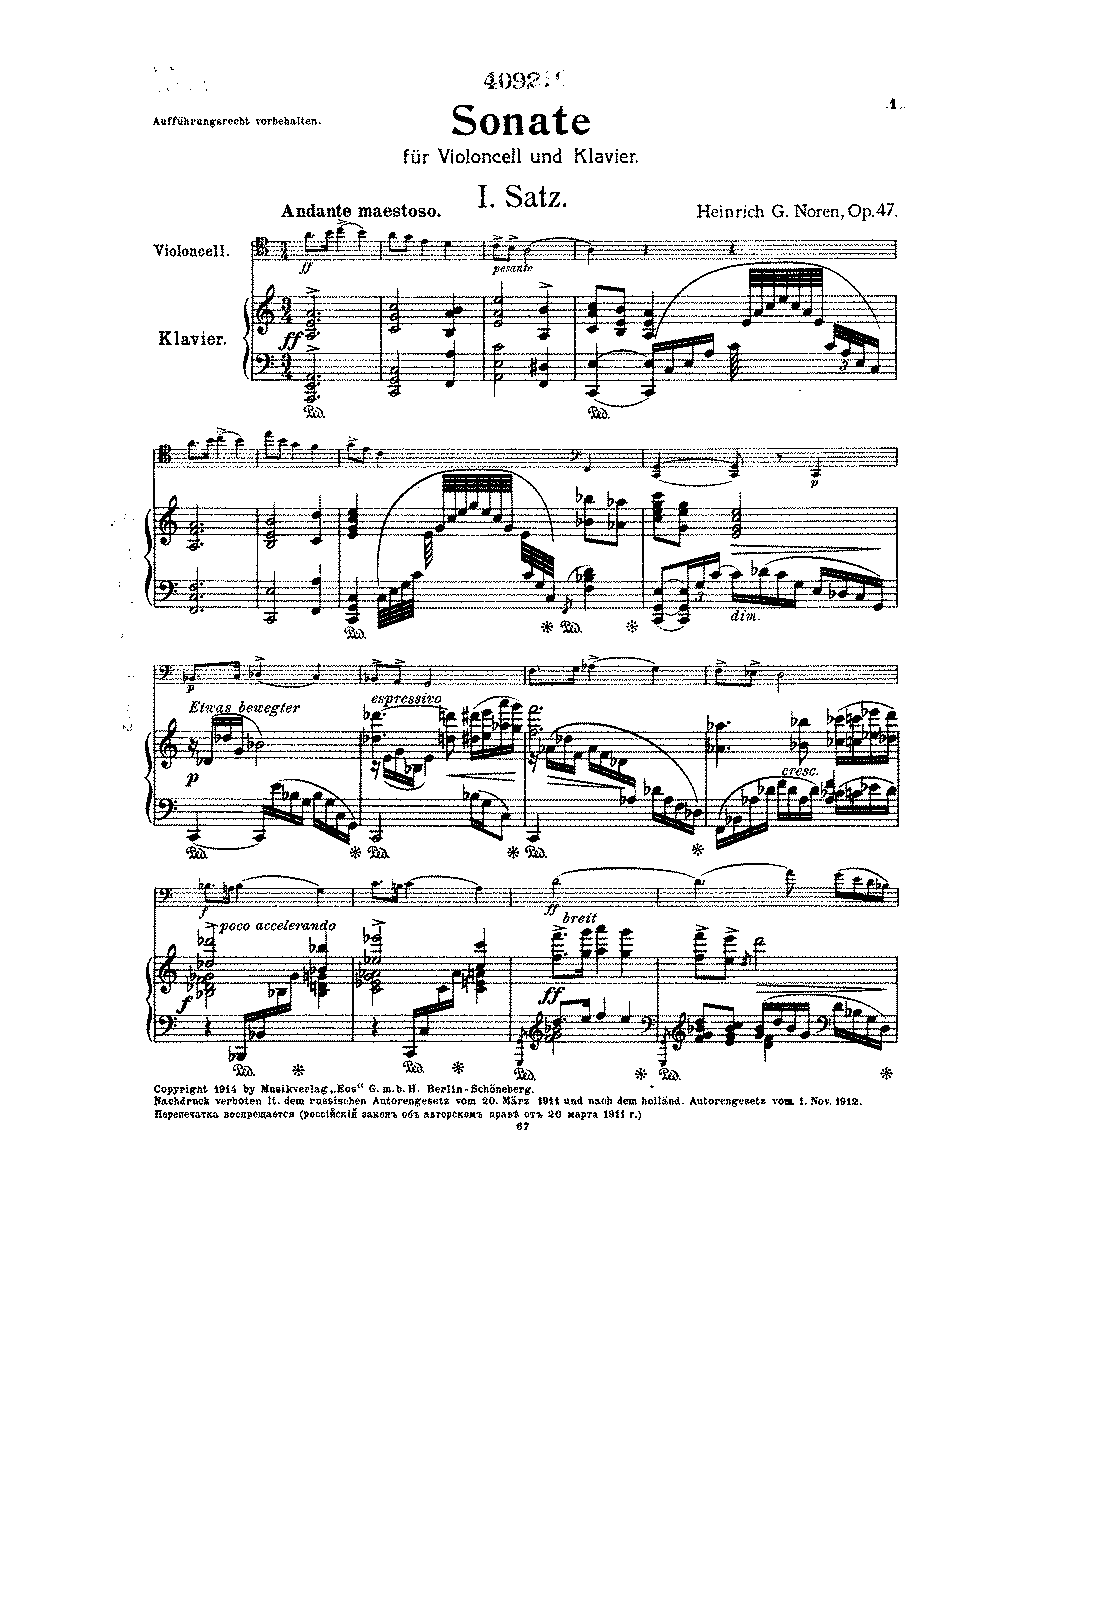 PMLP136007-Noren - Sonata for Cello and Piano Op47 score.pdf